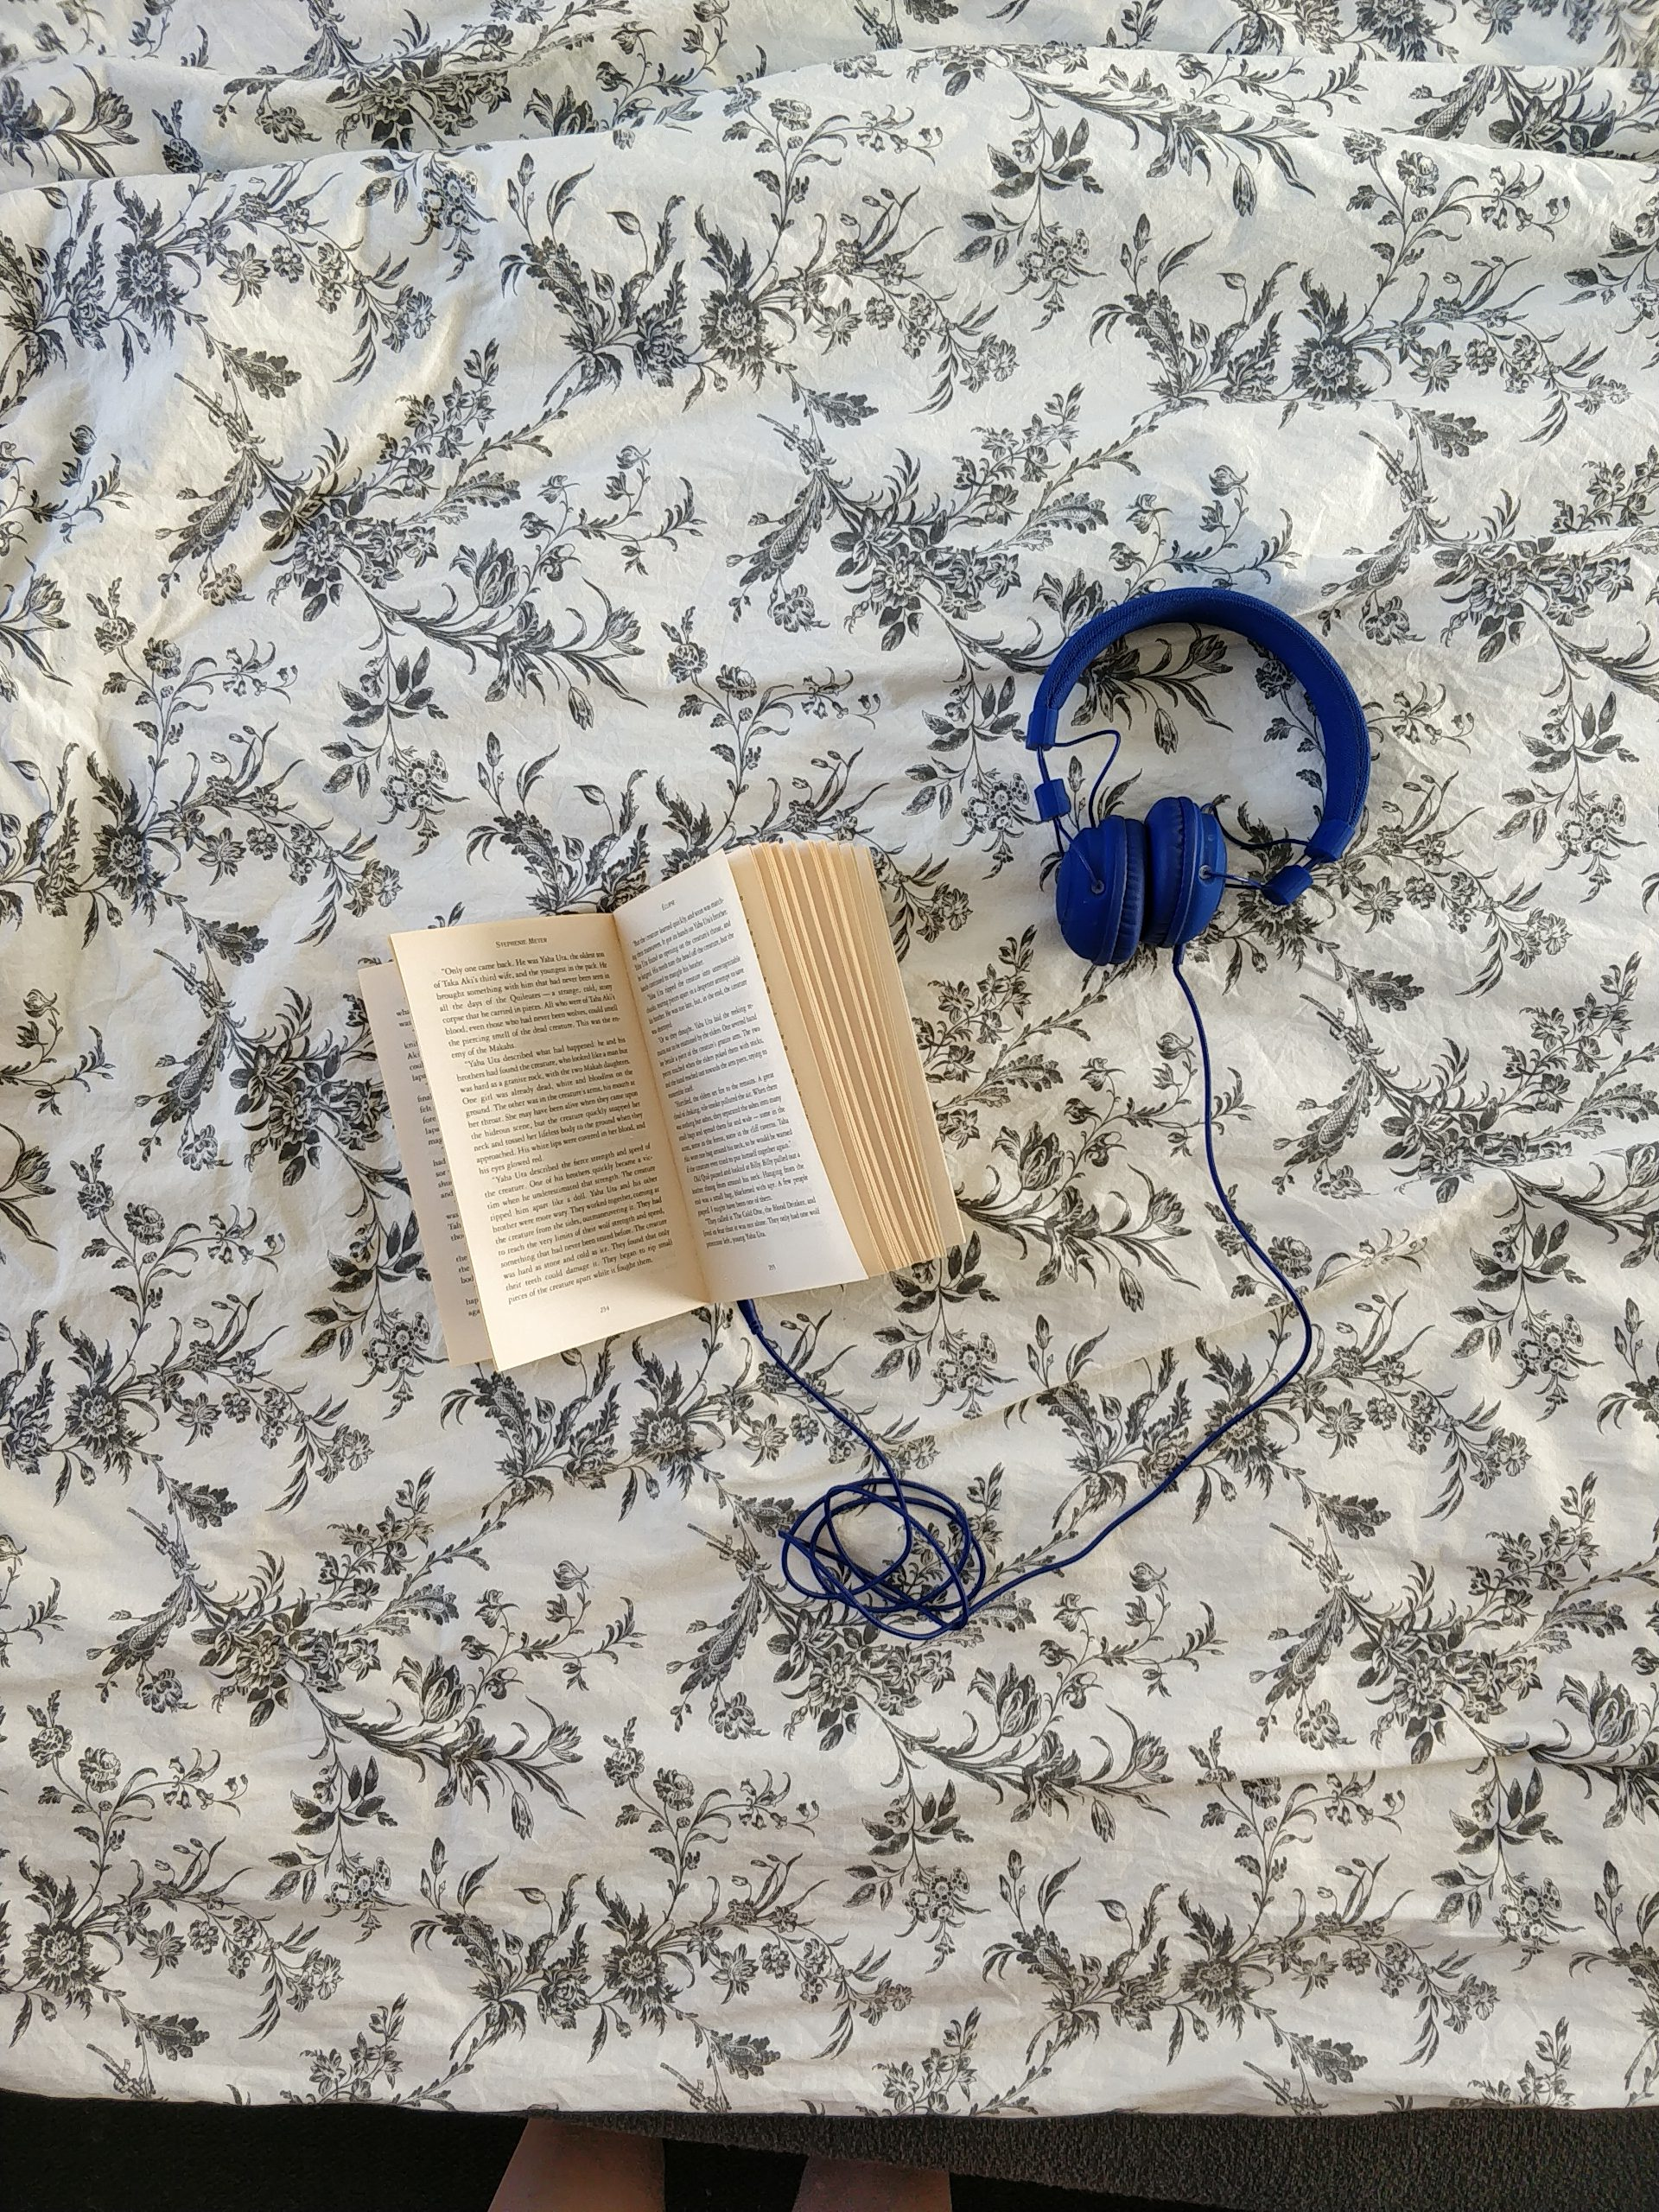 A book on a flowery background with a set of headphones attached to it